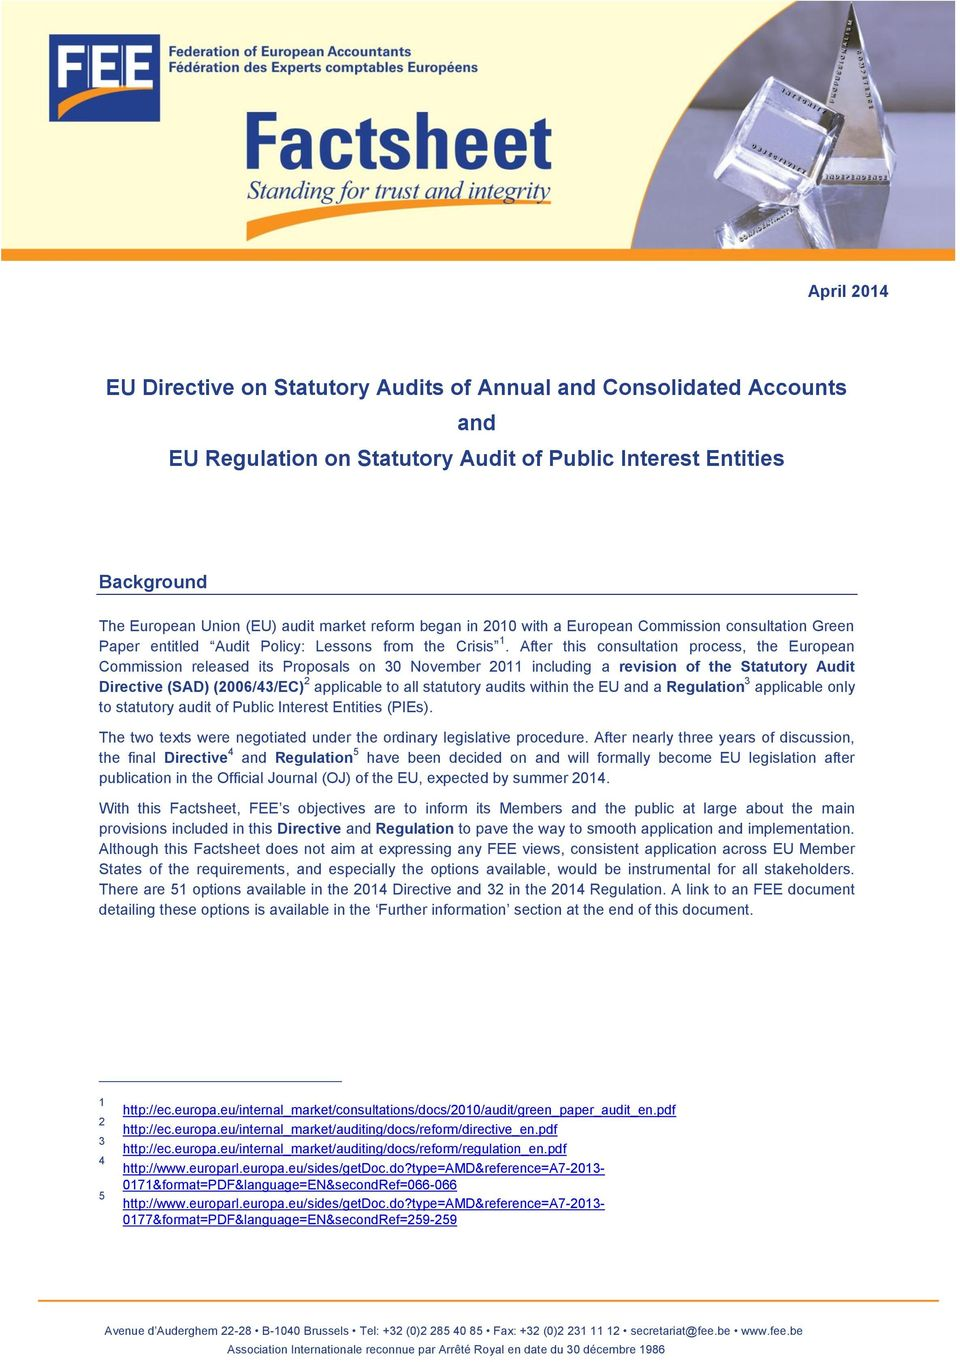 After this consultation process, the European Commission released its Proposals on 30 November 2011 including a revision of the Statutory Audit Directive (SAD) (2006/43/EC) 2 applicable to all